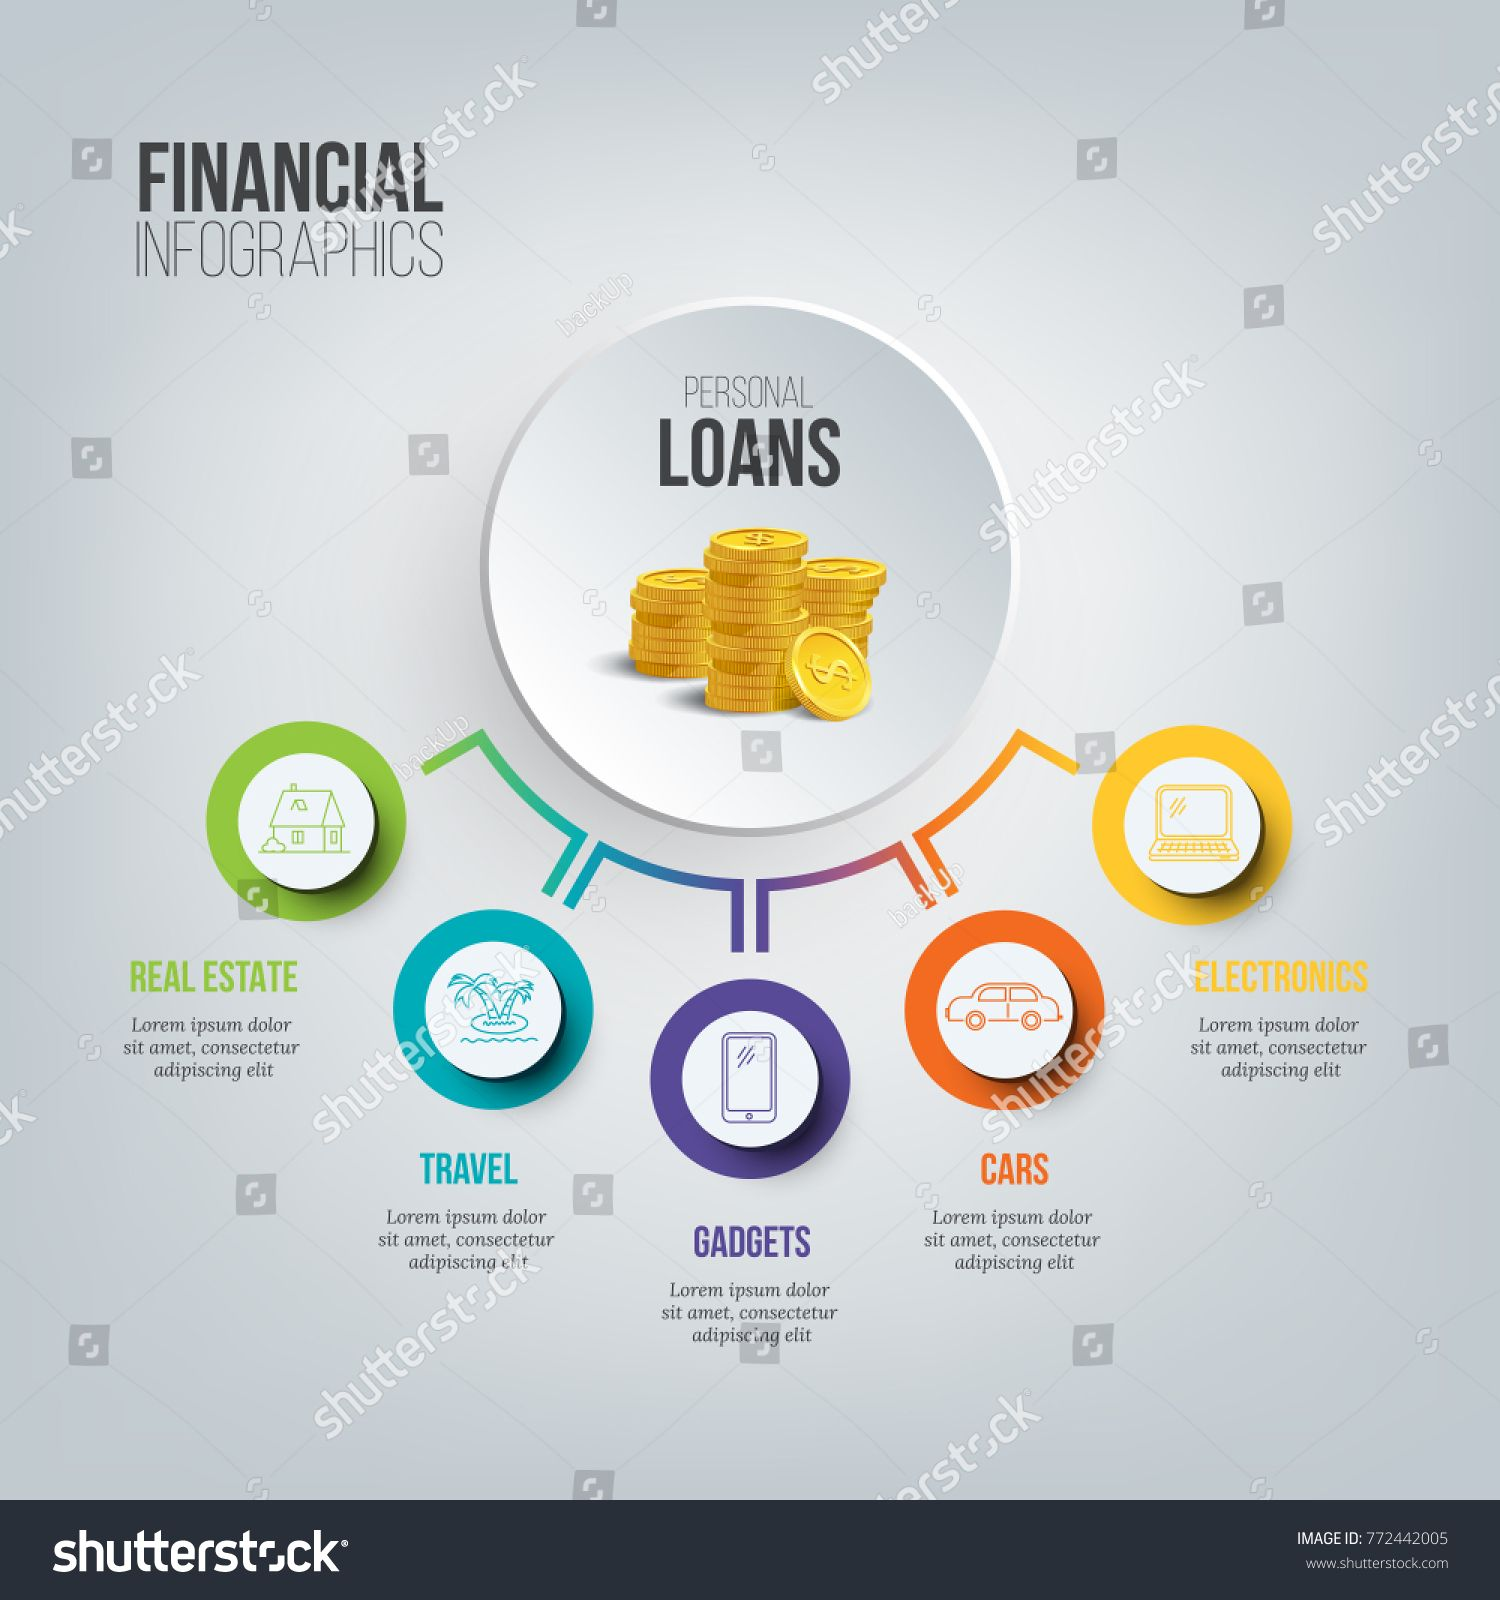 Financial Infographics Personal Loans Illustration Vector Consumer Credit Marketing Template Loans Illustration Infographic Personal Loans Marketing Template